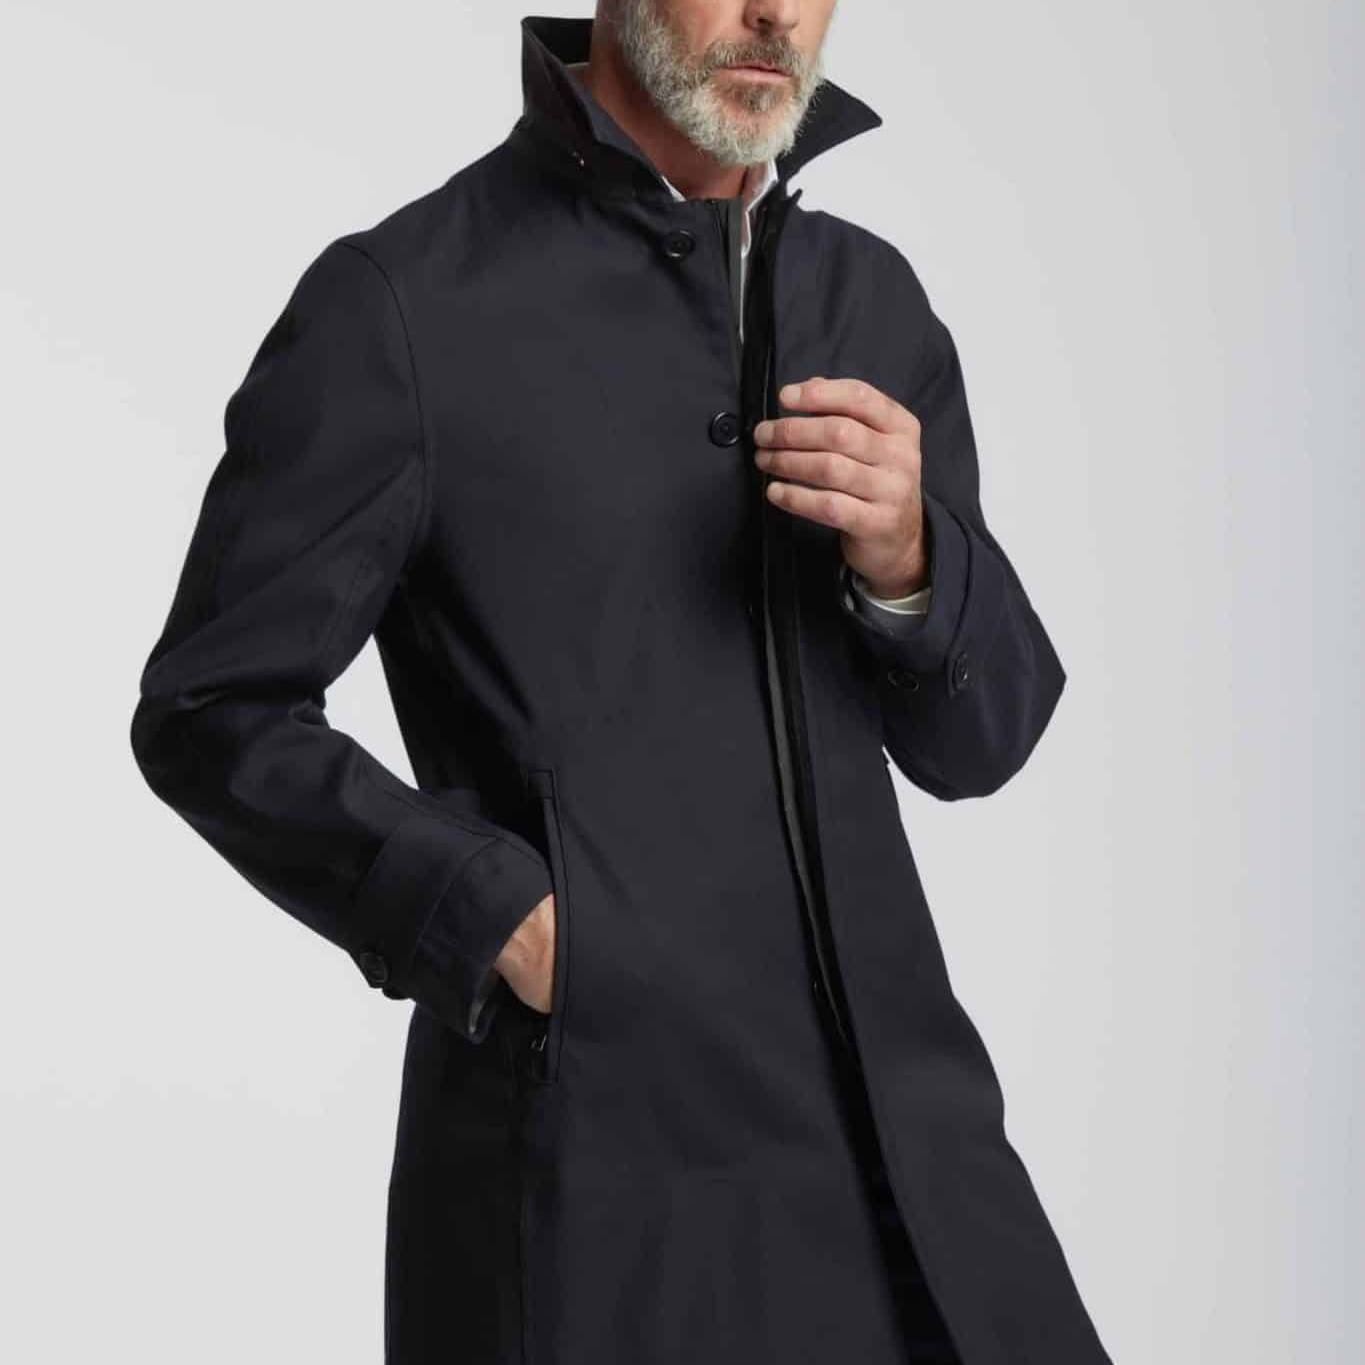 mission élégance intemporelle Trench coat bleu marine